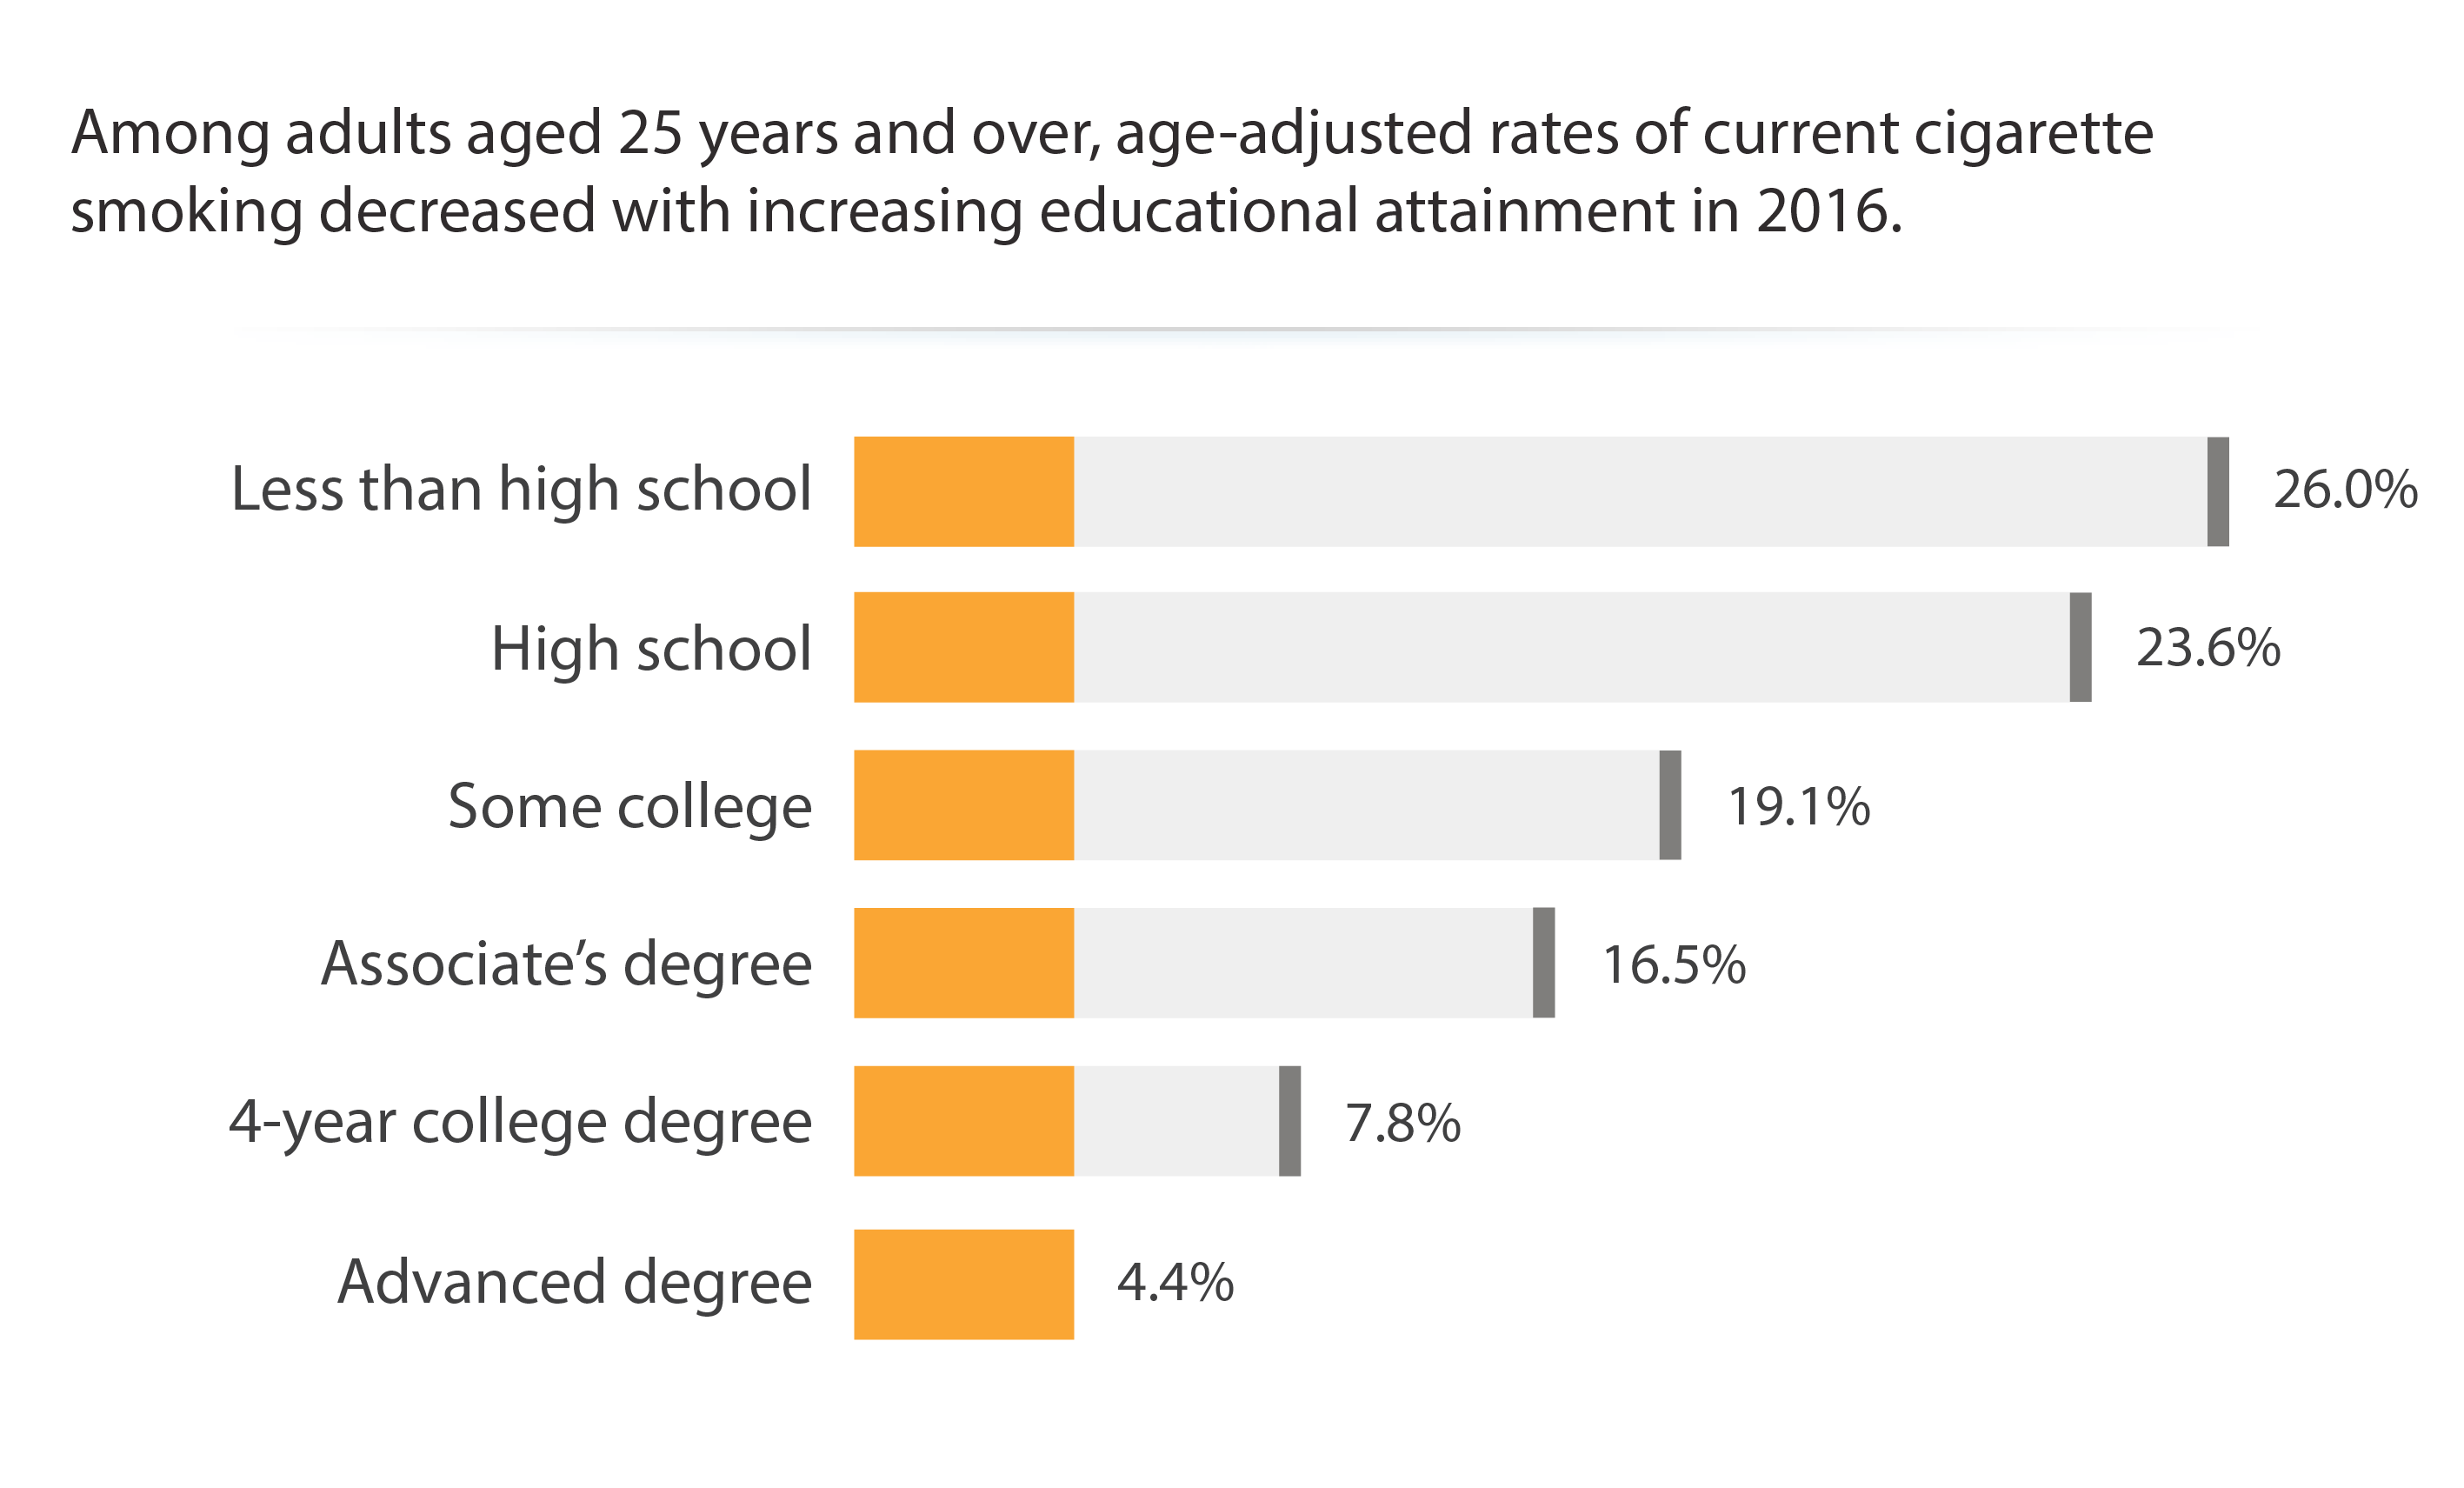 Current Cigarette Smoking Among Adults by Educational Attainment, 2016